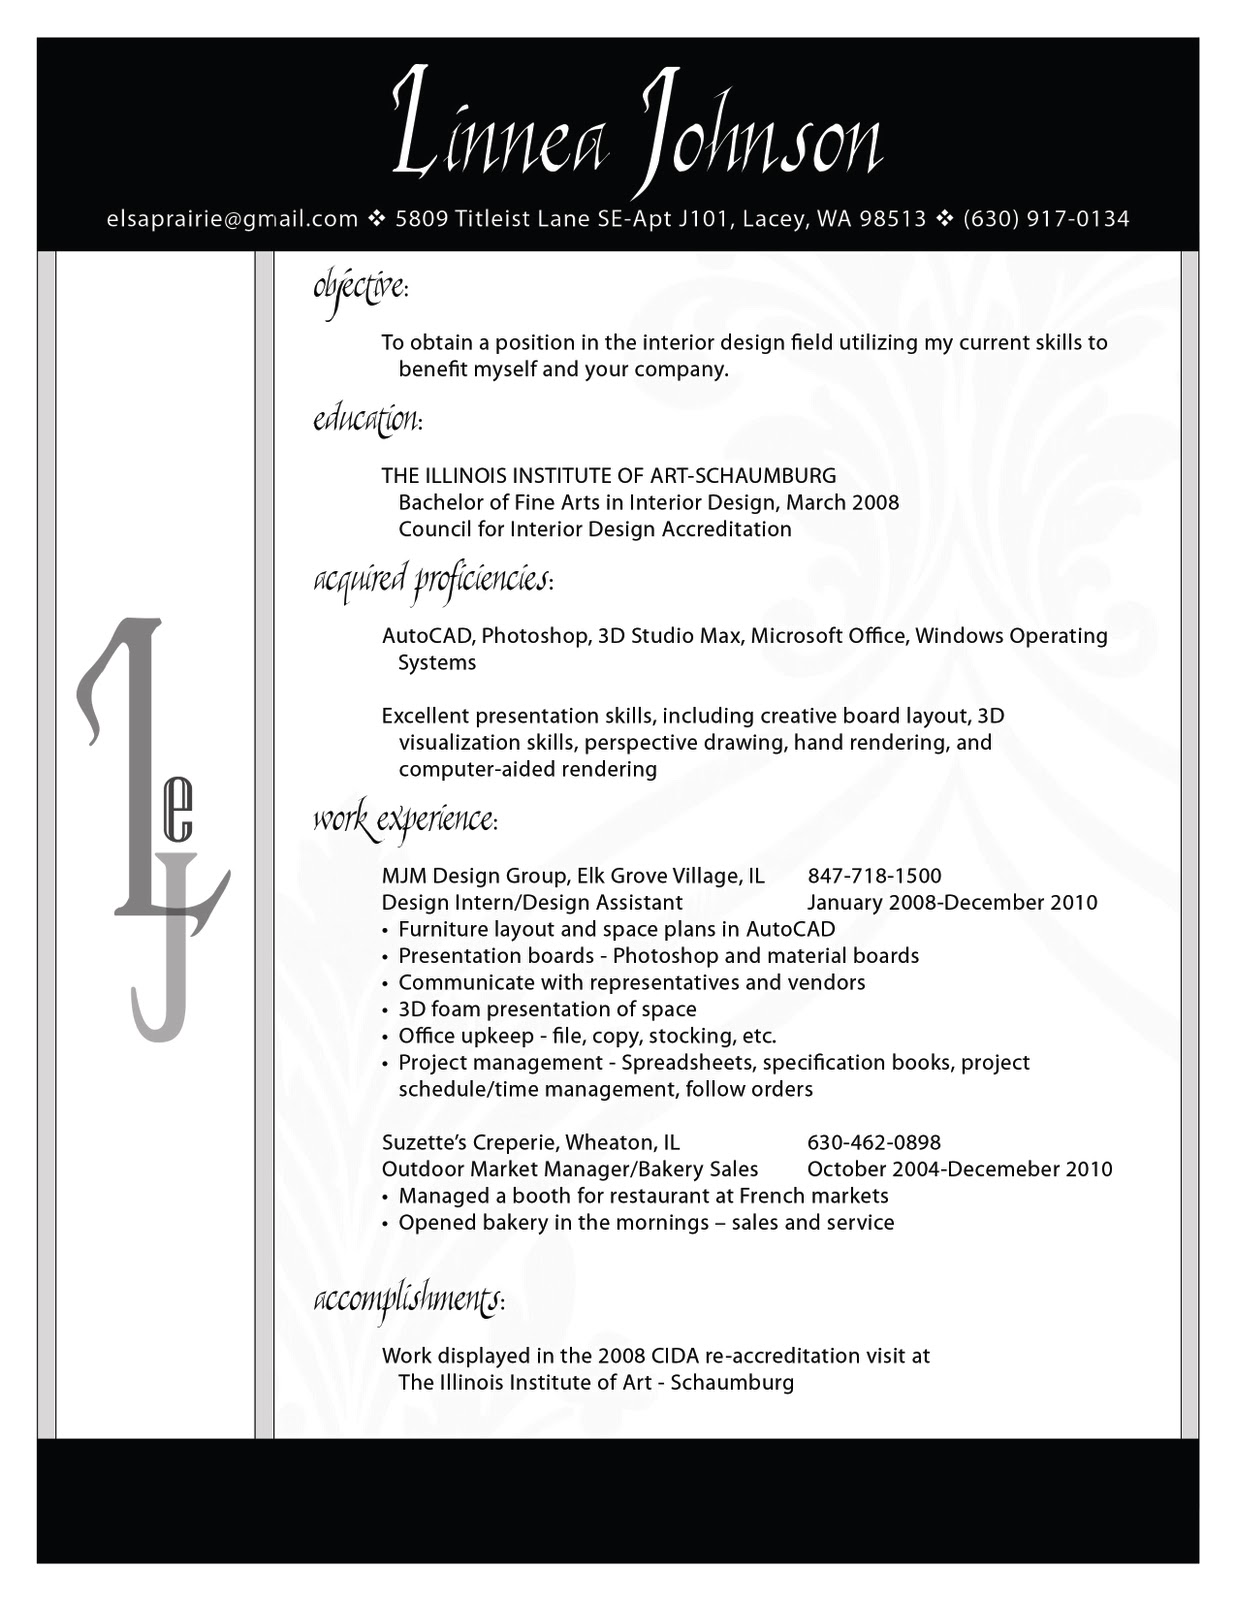 cool resumes interior design - Google Search | my*STYLE ...